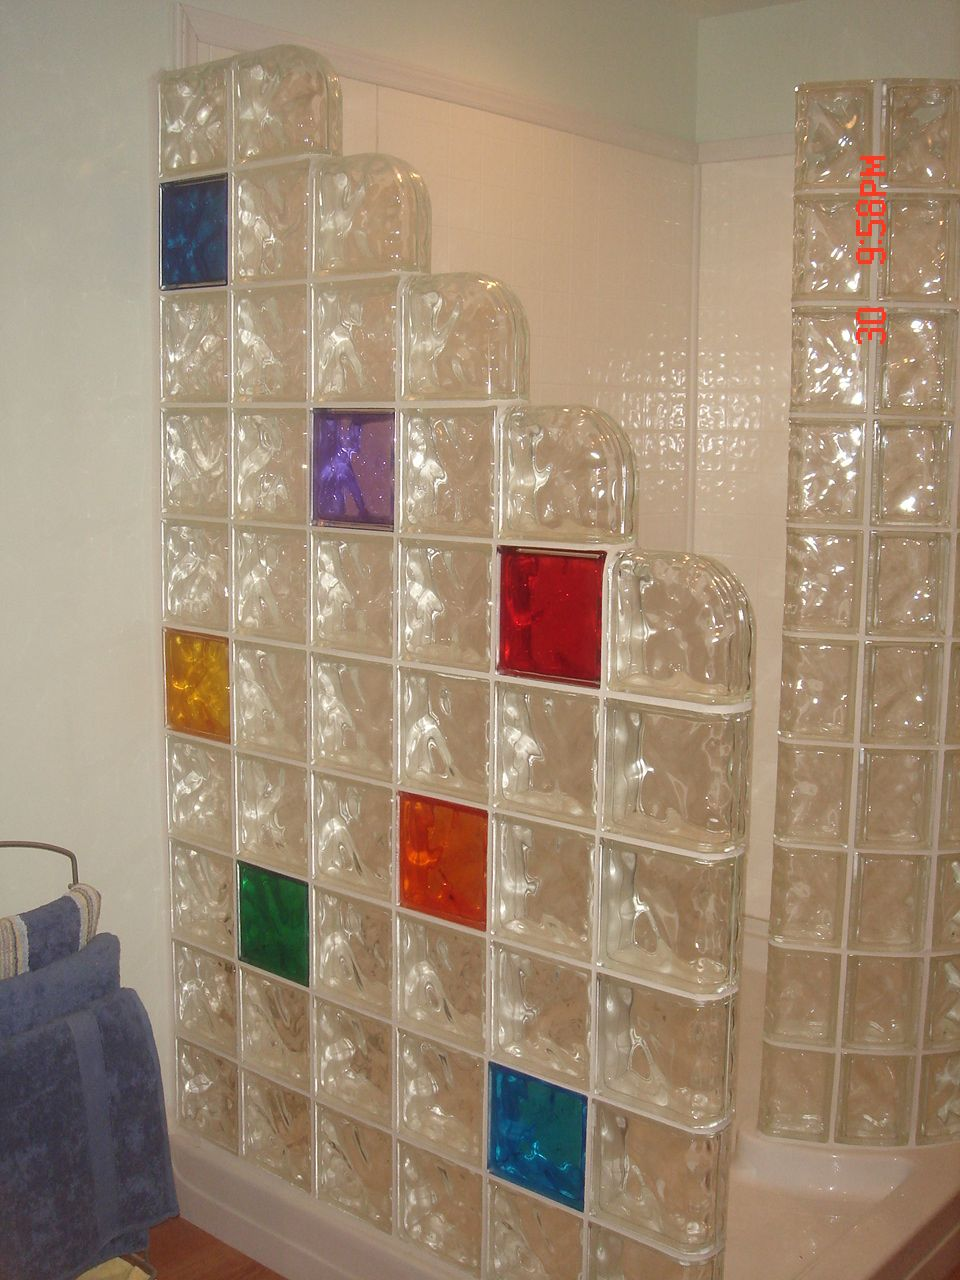 How To Select The Best Shape For A Glass Block Shower Wall In 2020